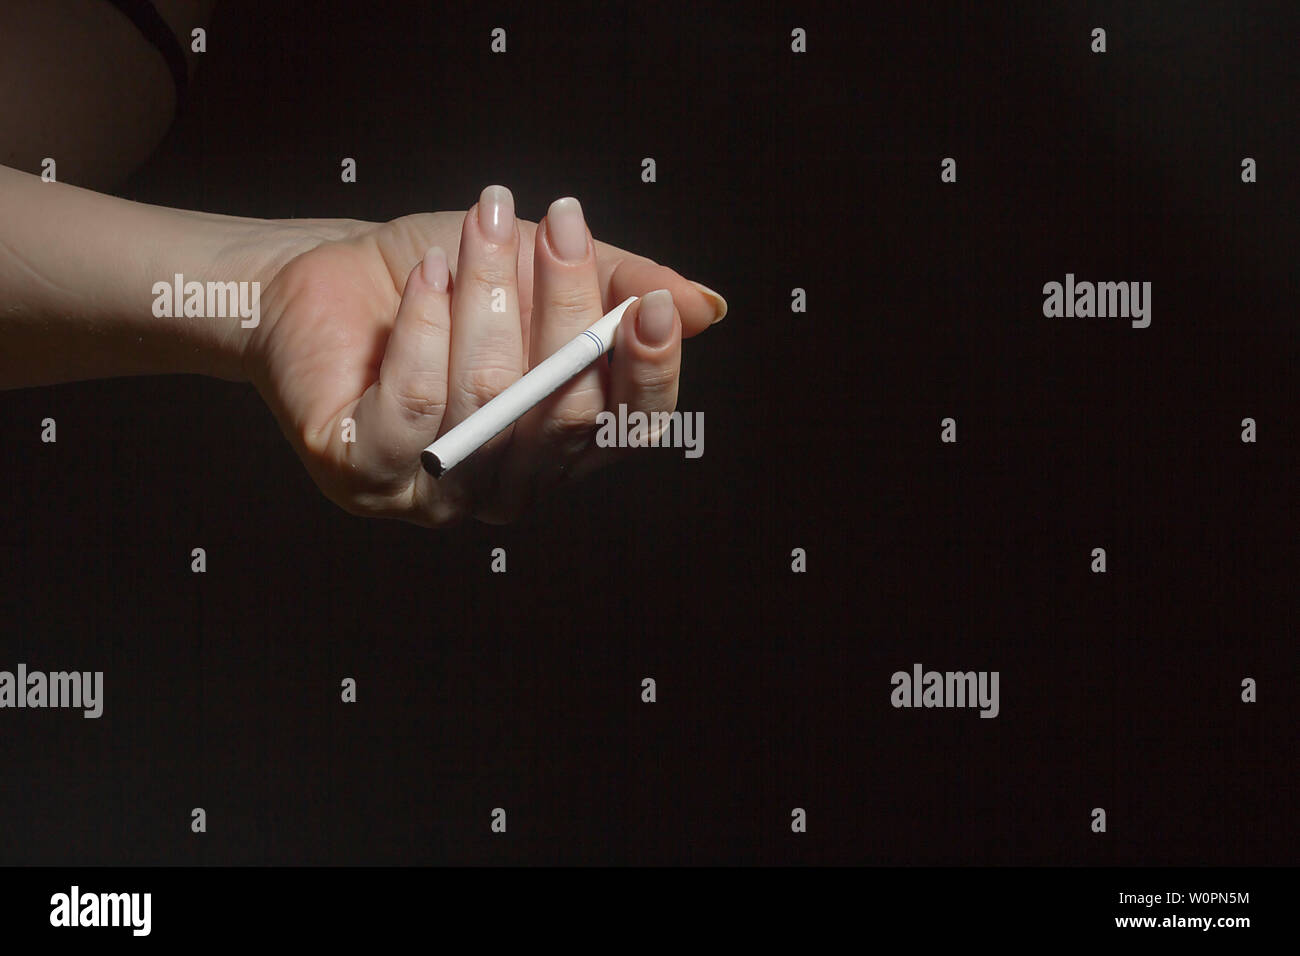 Female hand with an unlit cigarette on a black background - Stock Image